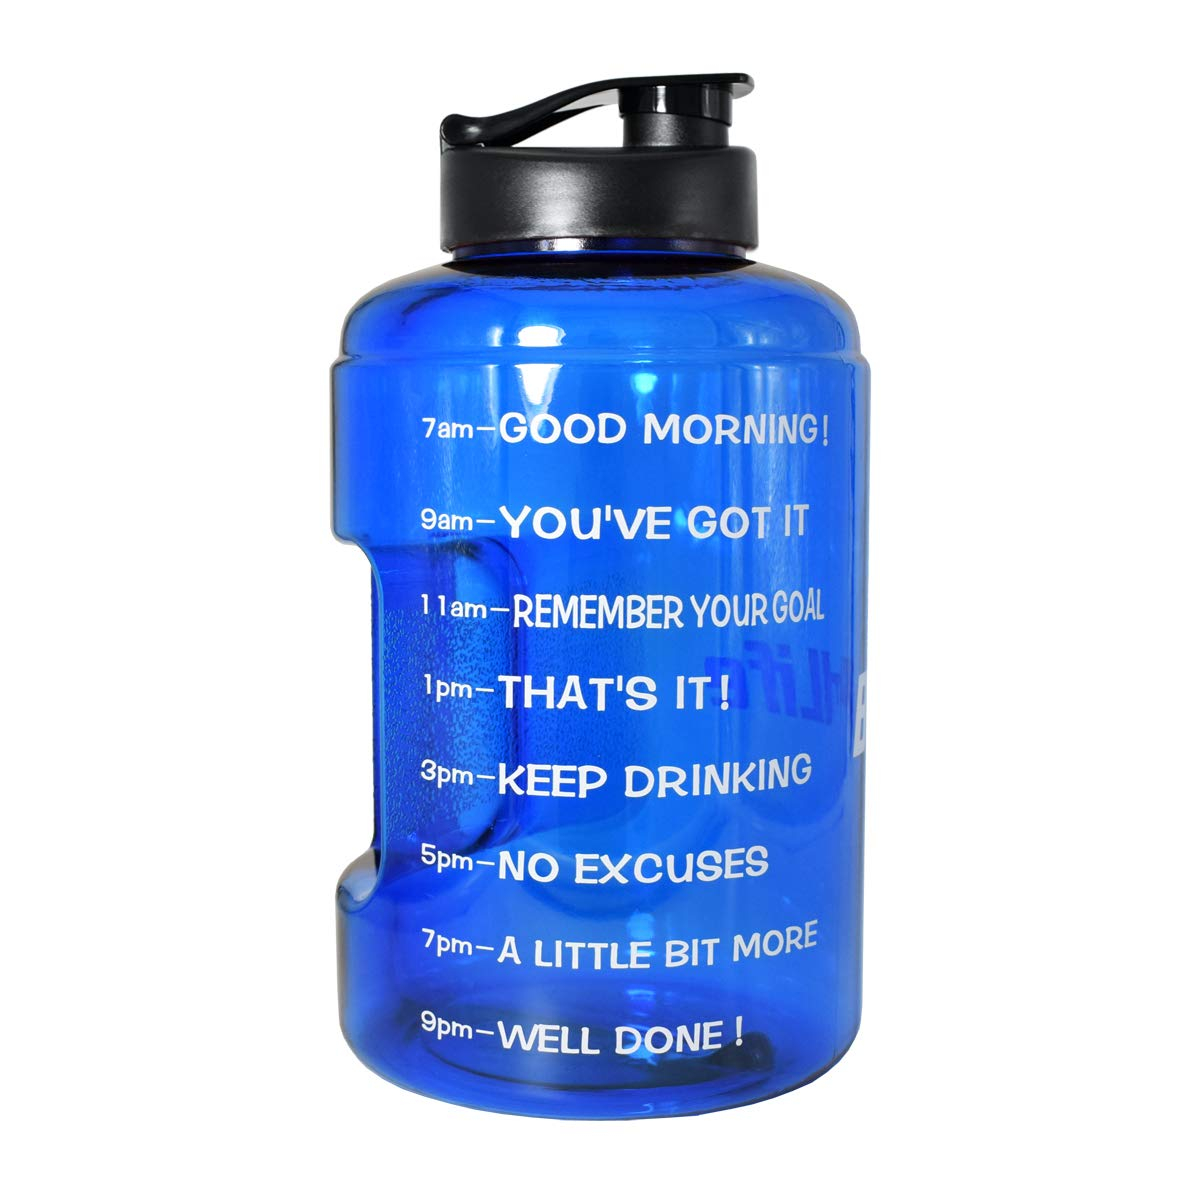 BuildLife 1 Gallon(128OZ) Sports Water Bottle Inspirational Fitness Workout Wide Mouth with Time Marker for Measuring Your H2O Intake BPA Free(1 Gallon, Blue)